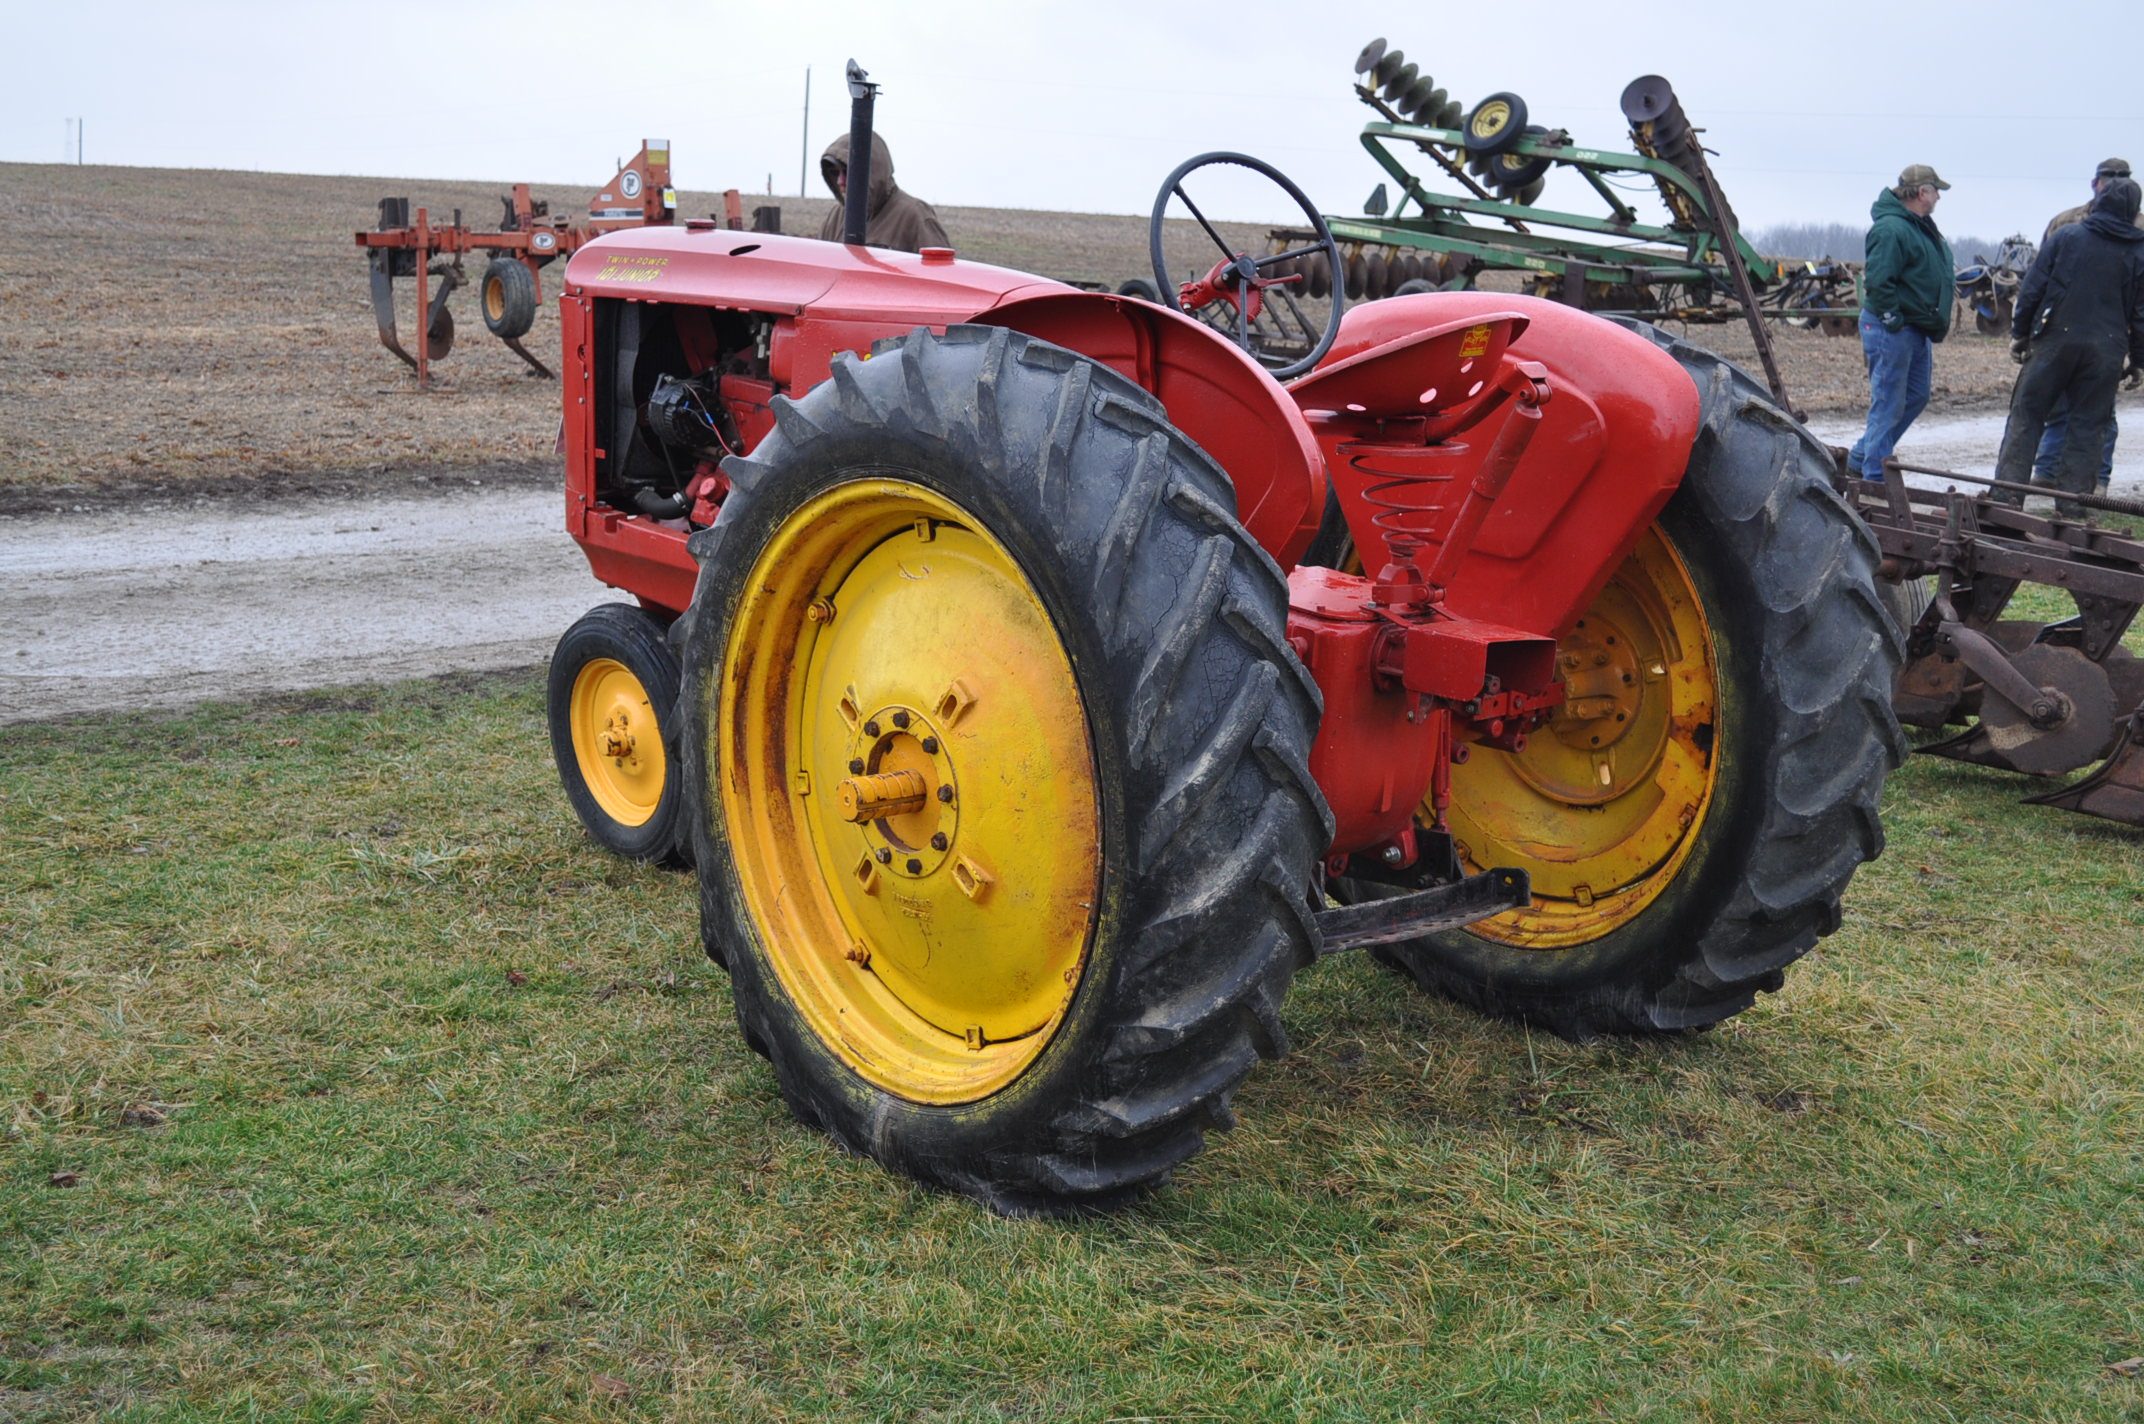 Massey Harris 101 Junior tractor, 12-38 tires, narrow front, 540 pto, SN 501605 - Image 2 of 12